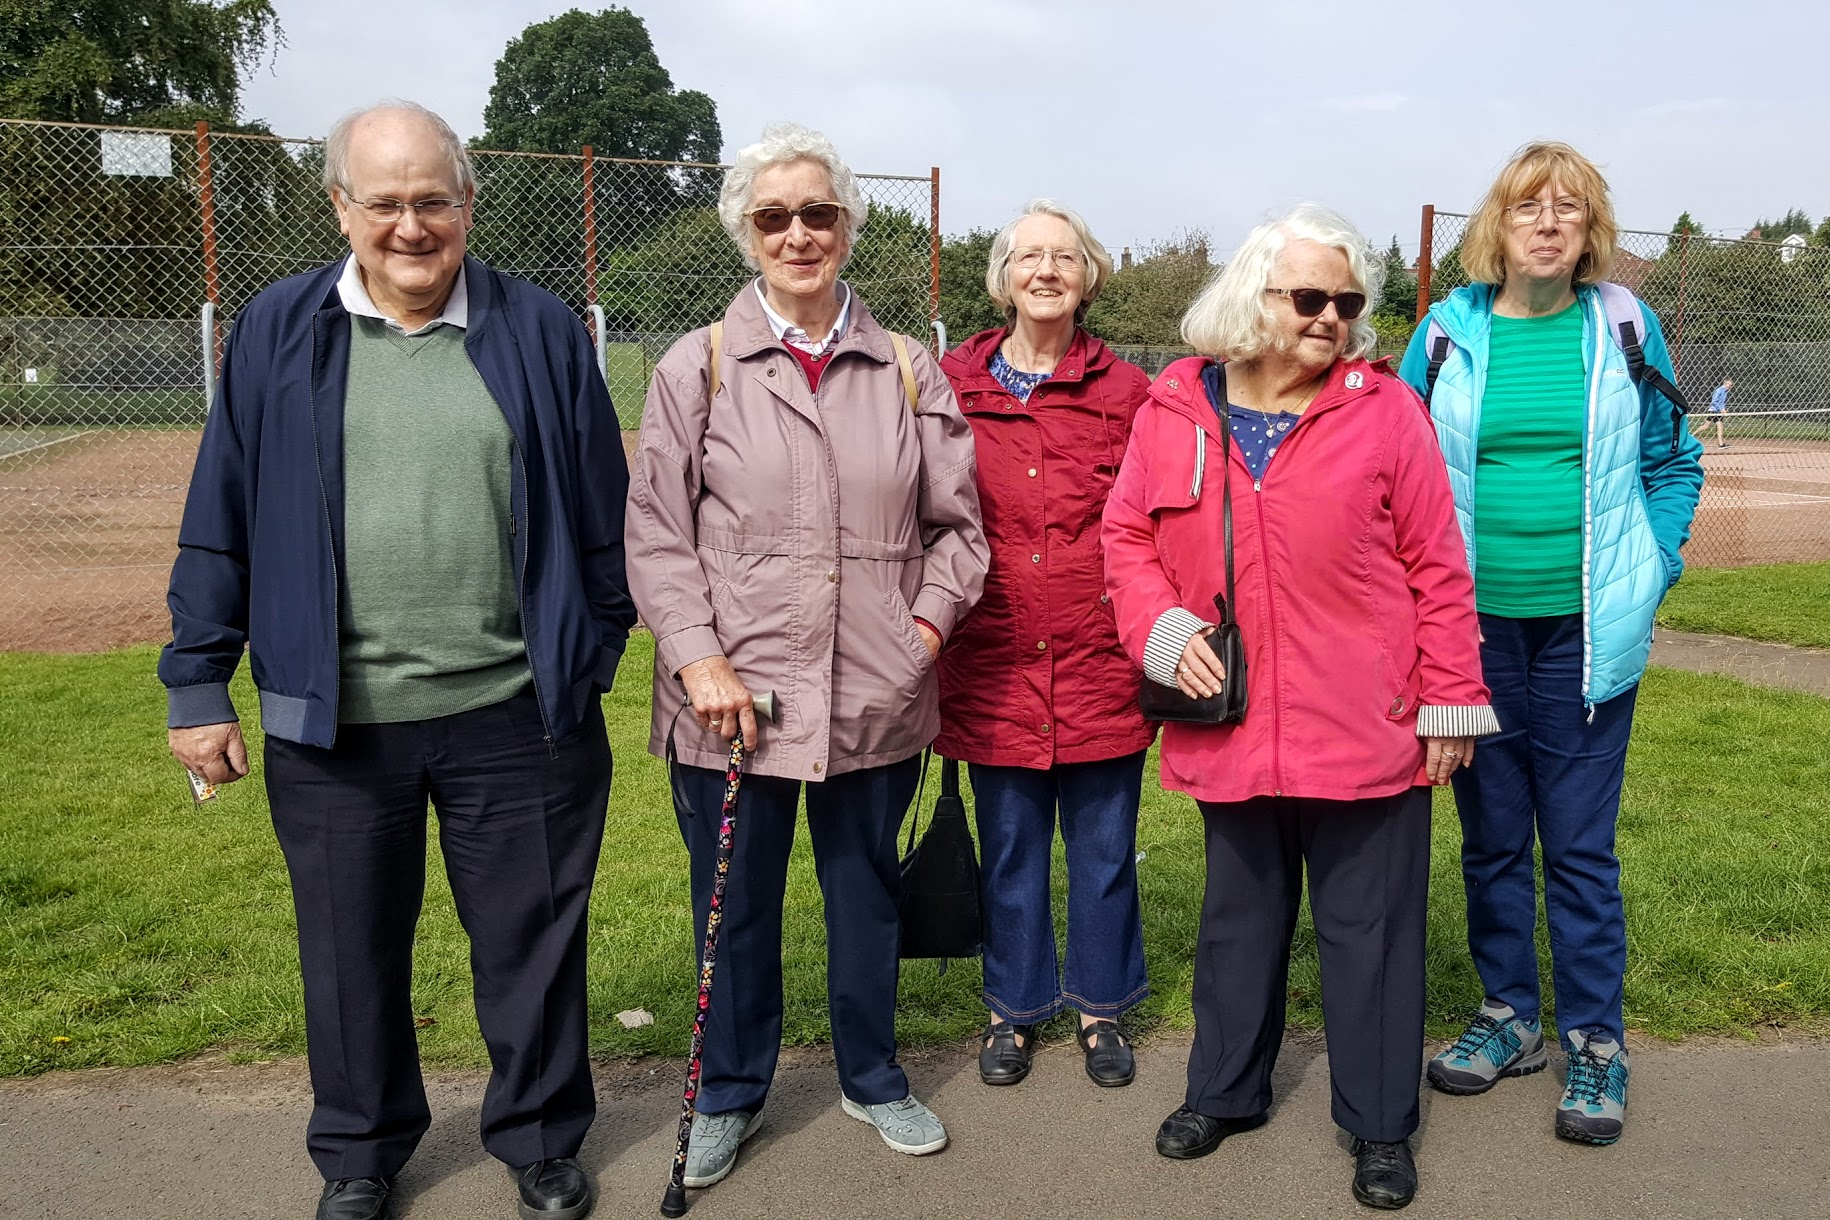 Some of the group at Newlands Park